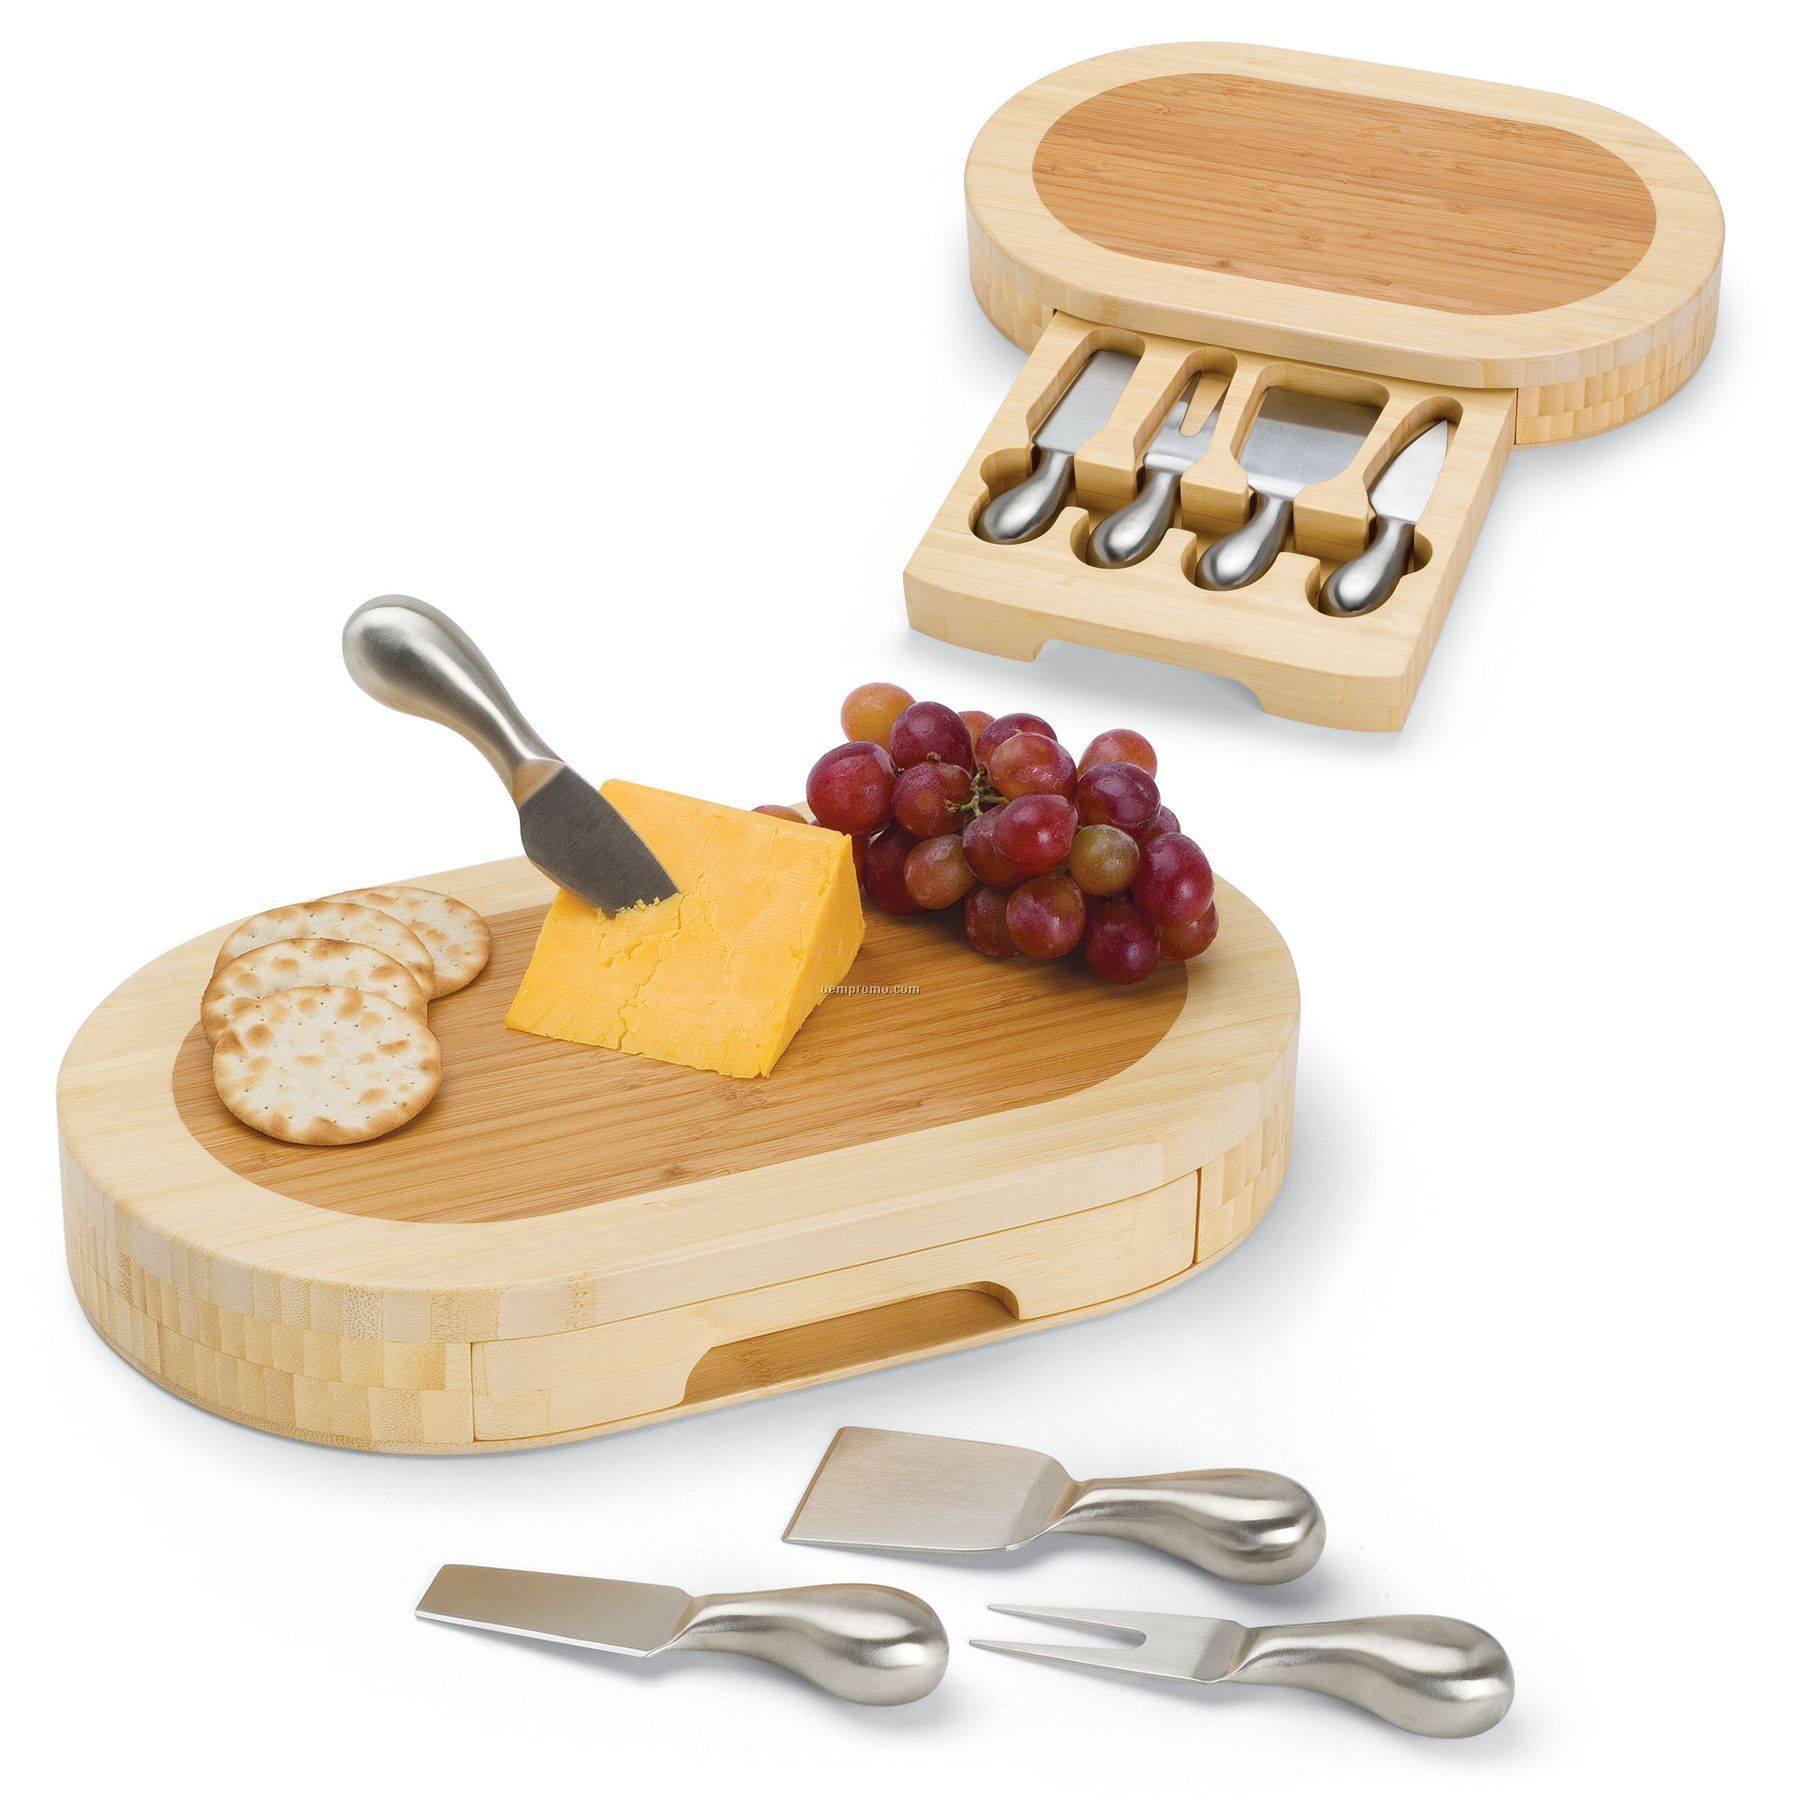 Formaggio Oval Cutting Board W/ Slide Out Drawer & 4 Cheese Tools